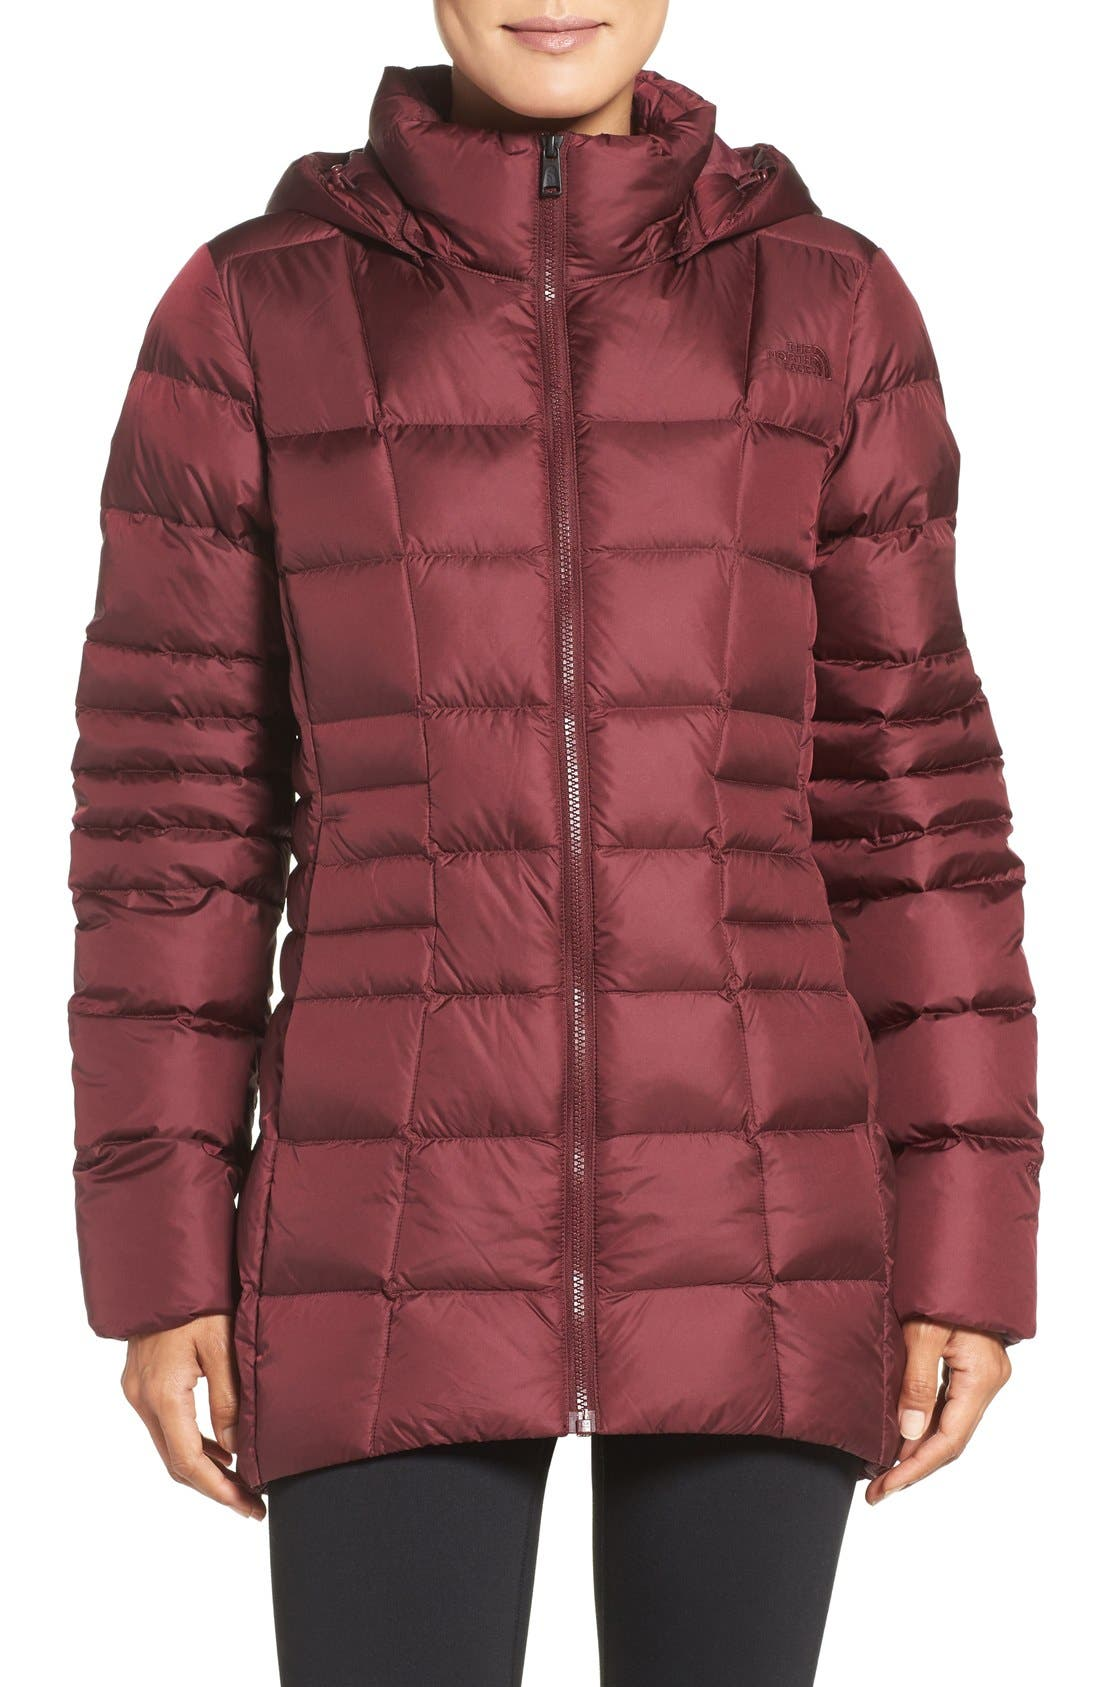 Alternate Image 1 Selected - The North Face Transit II Down Jacket